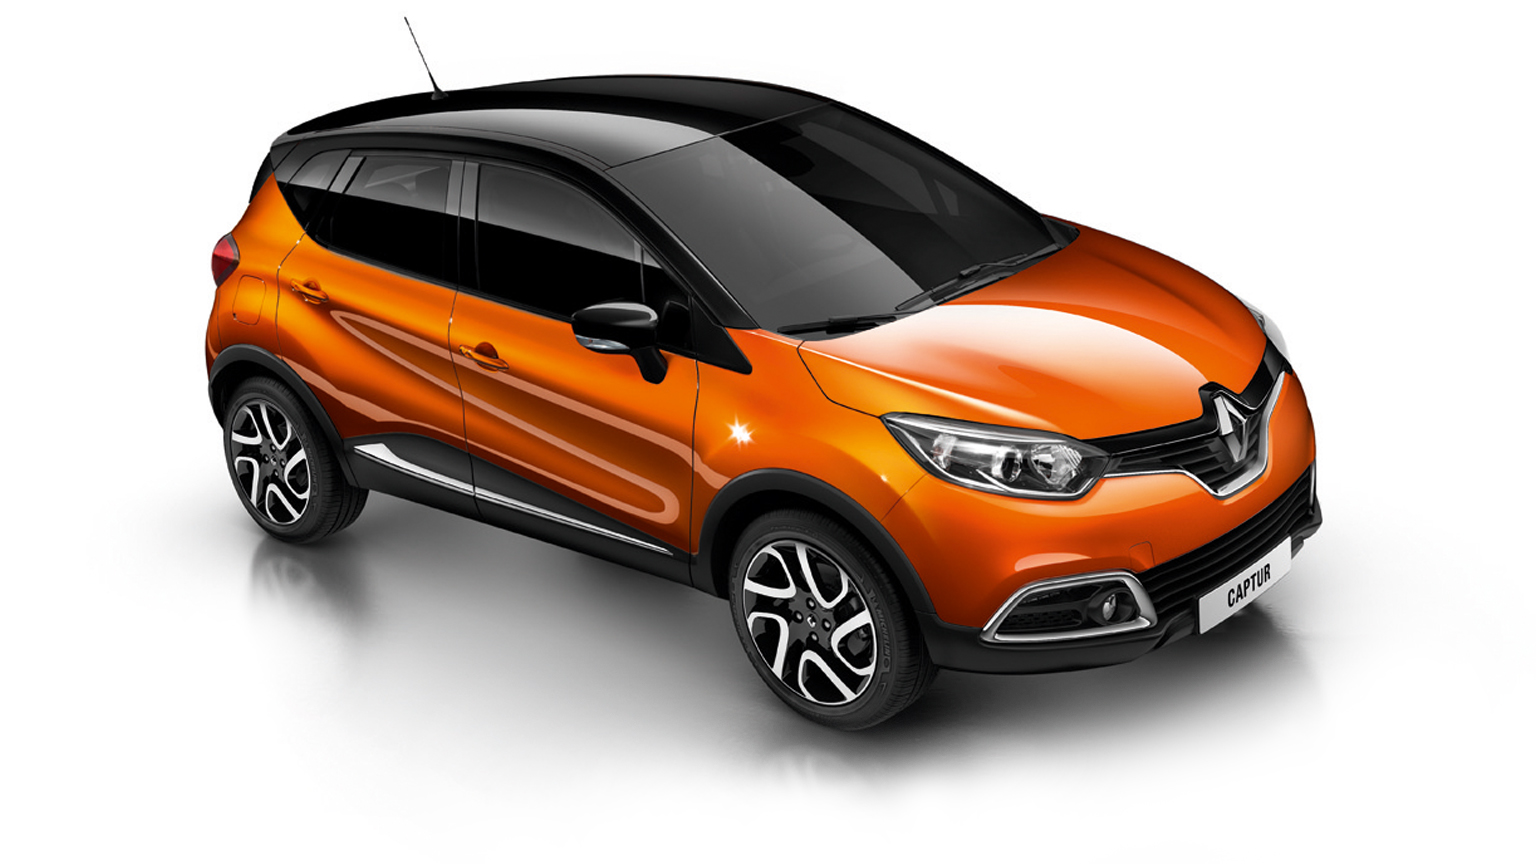 used renault captur cars for sale on auto trader uk. Black Bedroom Furniture Sets. Home Design Ideas